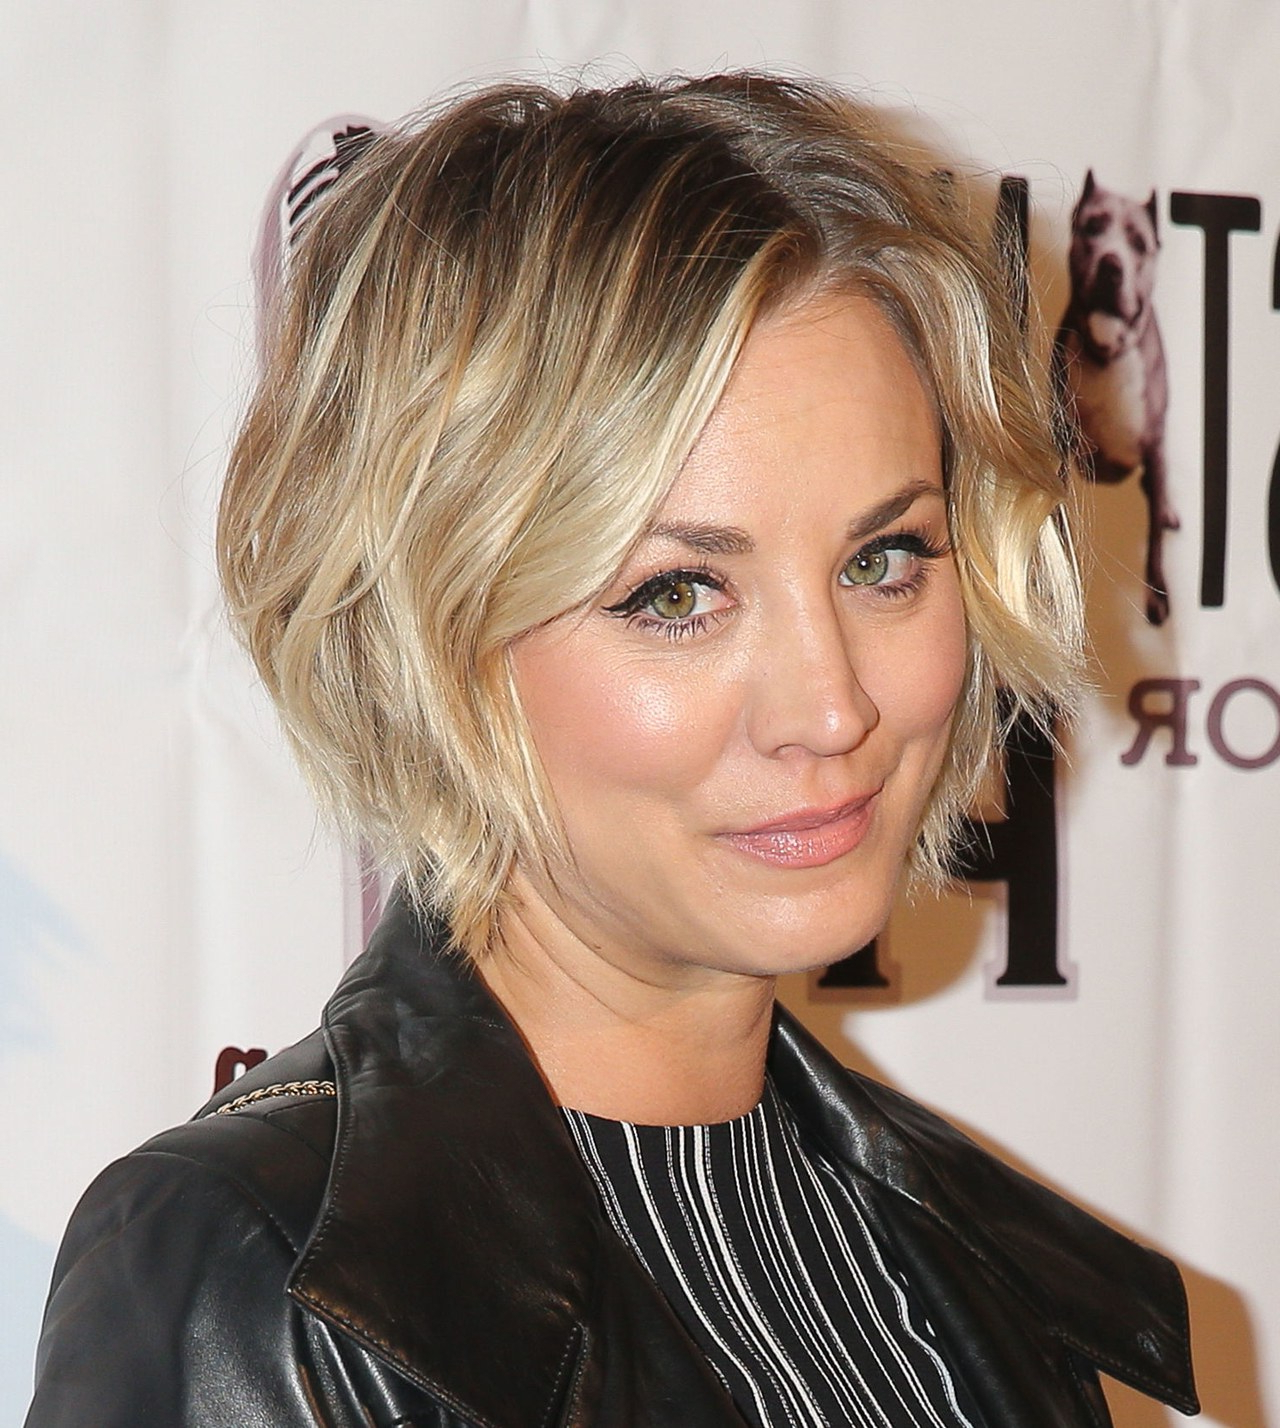 Kaley Cuoco Hair Evolution: See How She Grew Out Her Pixie (View 14 of 20)